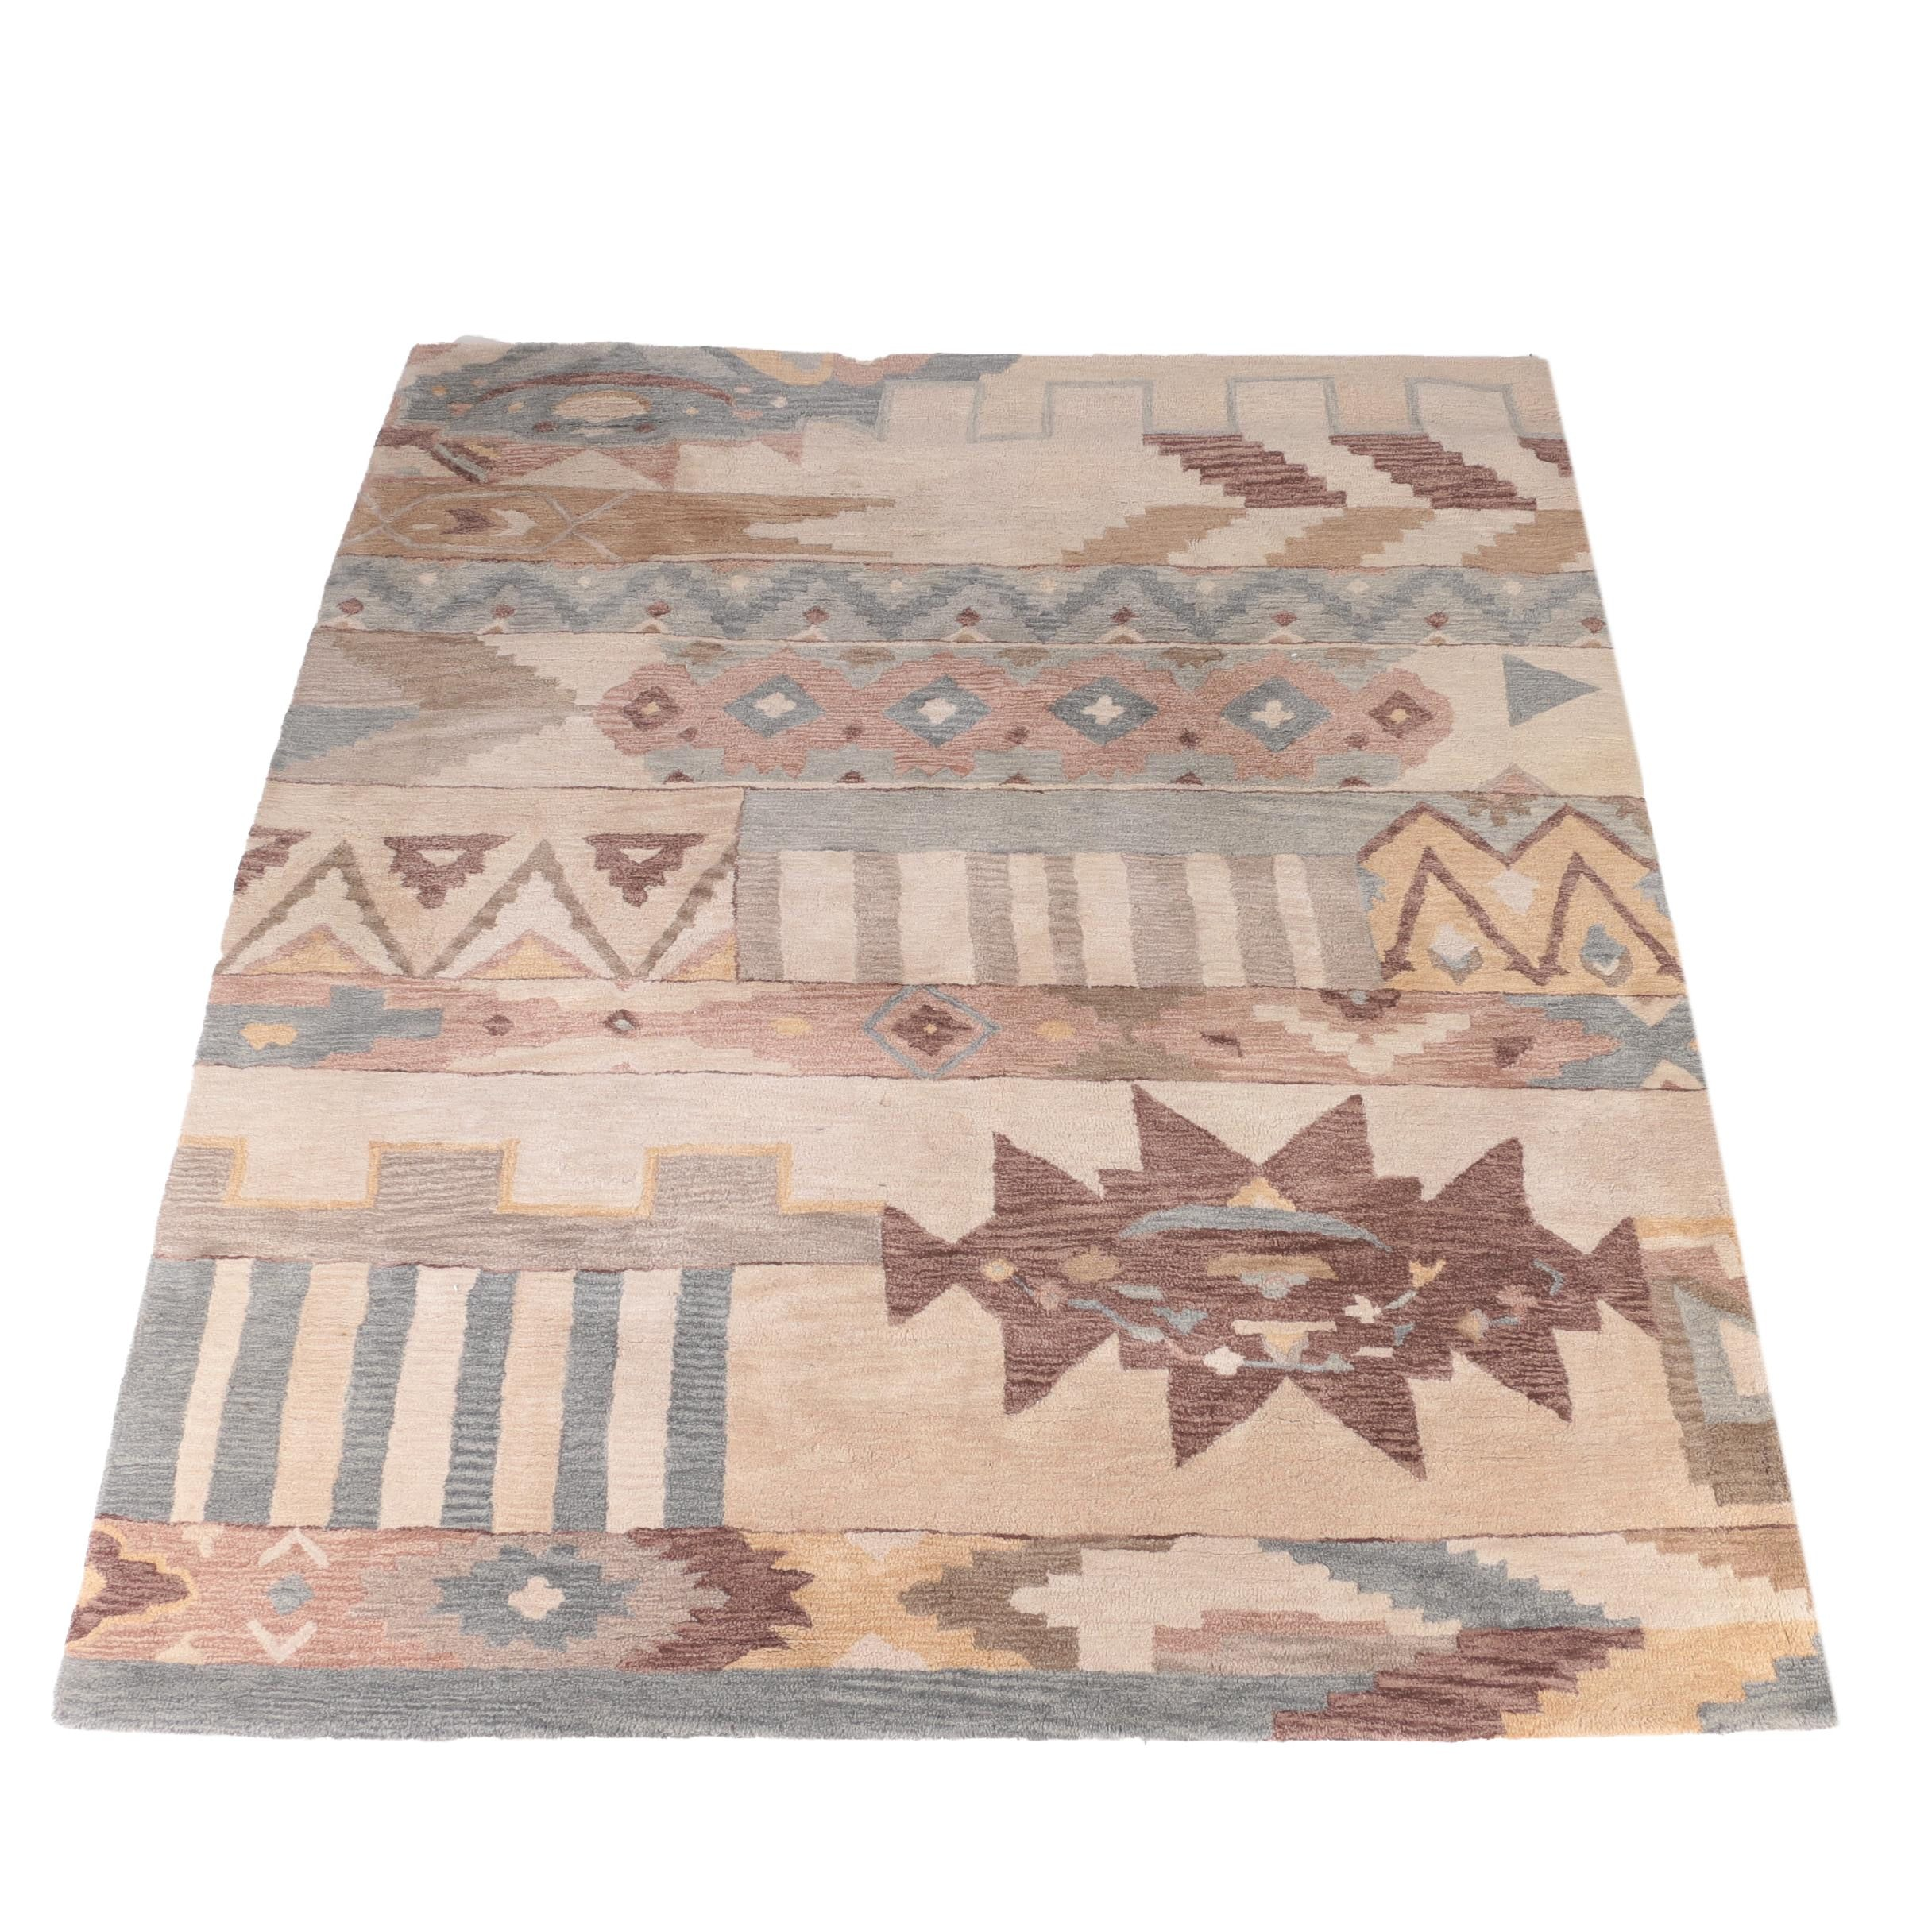 Large Hand-Tufted Area Rug